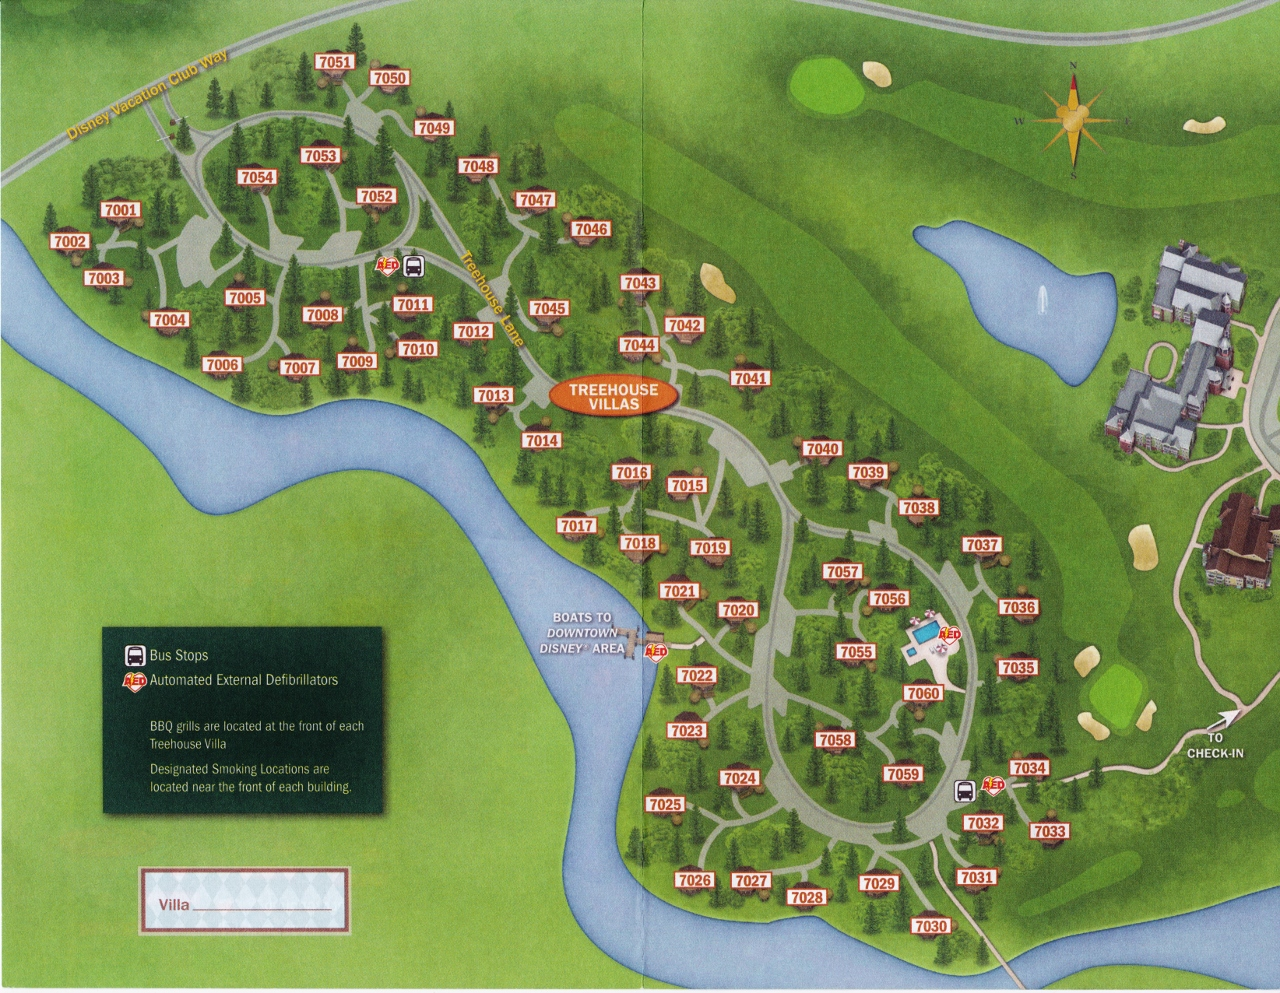 Treehouse Villas Map (1280x993)